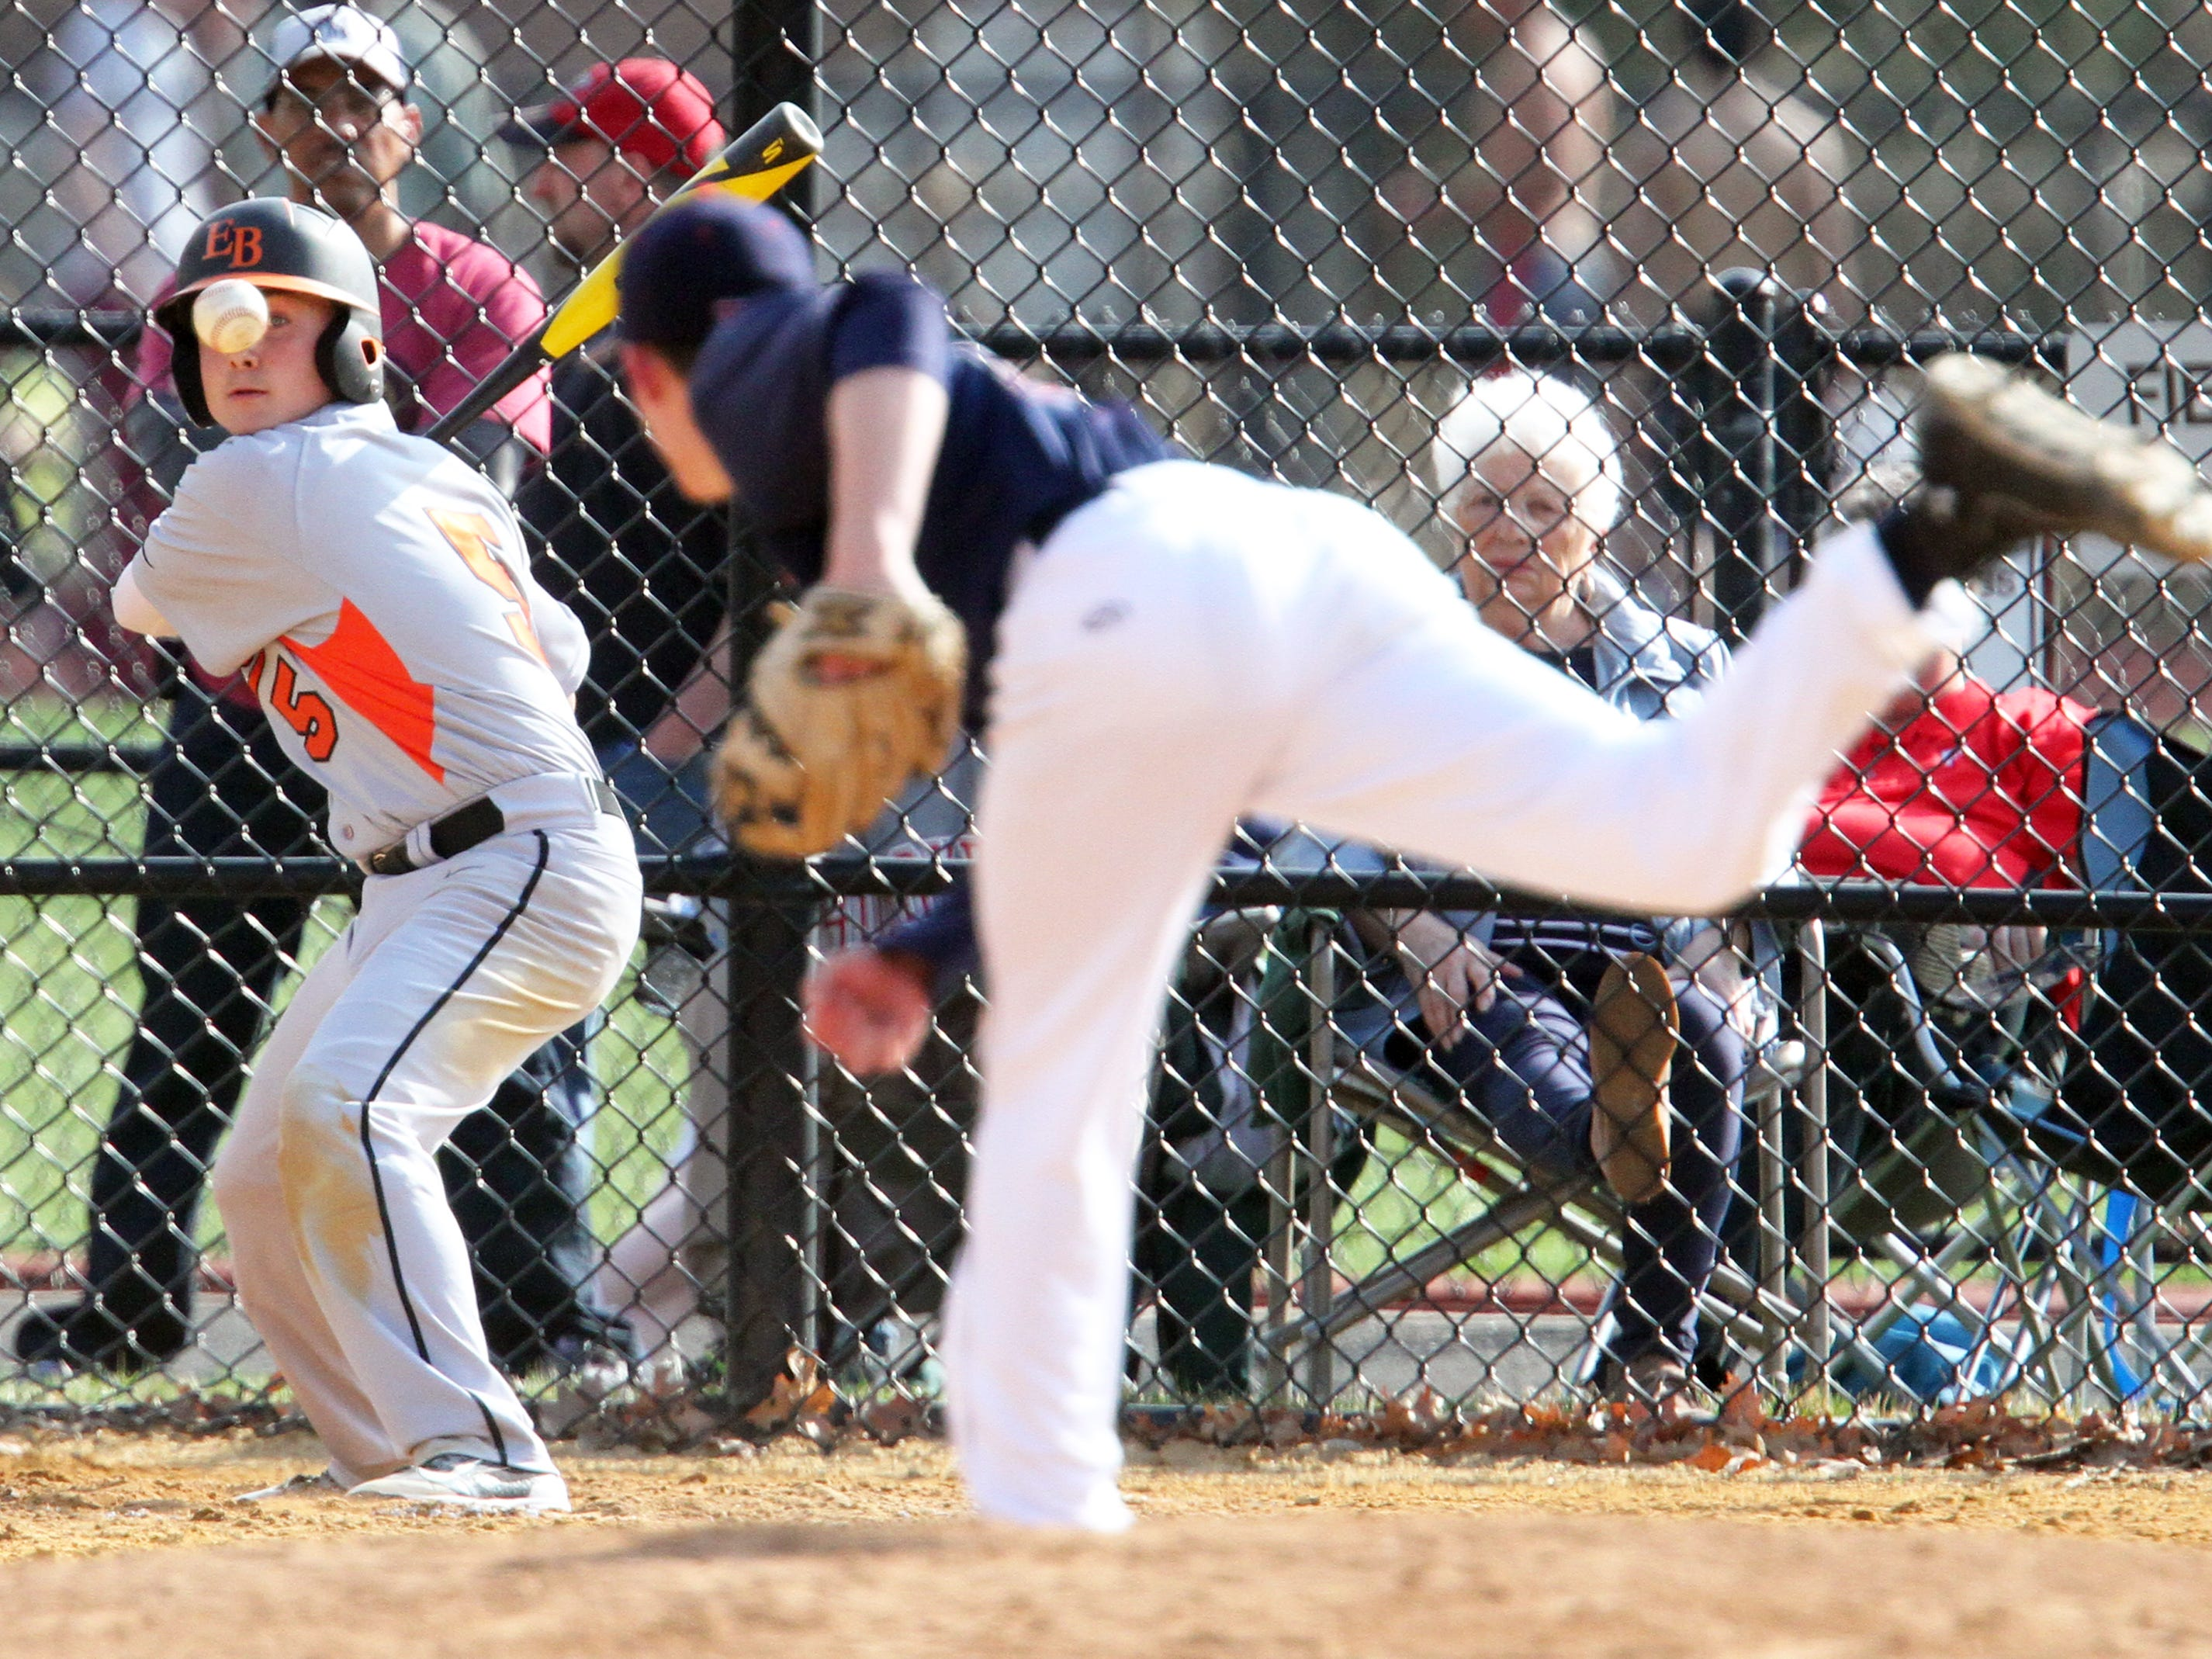 Dunellen takes on East Brunswick Tech in a varsity baseball game in Dunellen on Friday April 17,2015. Batter # 5 (left) East Brunswick's # 5 Vincent Pellicane keeps his eye on the ball as Dunelle pitcher # 5 (right) David Johnson tries to haul the ball by him.